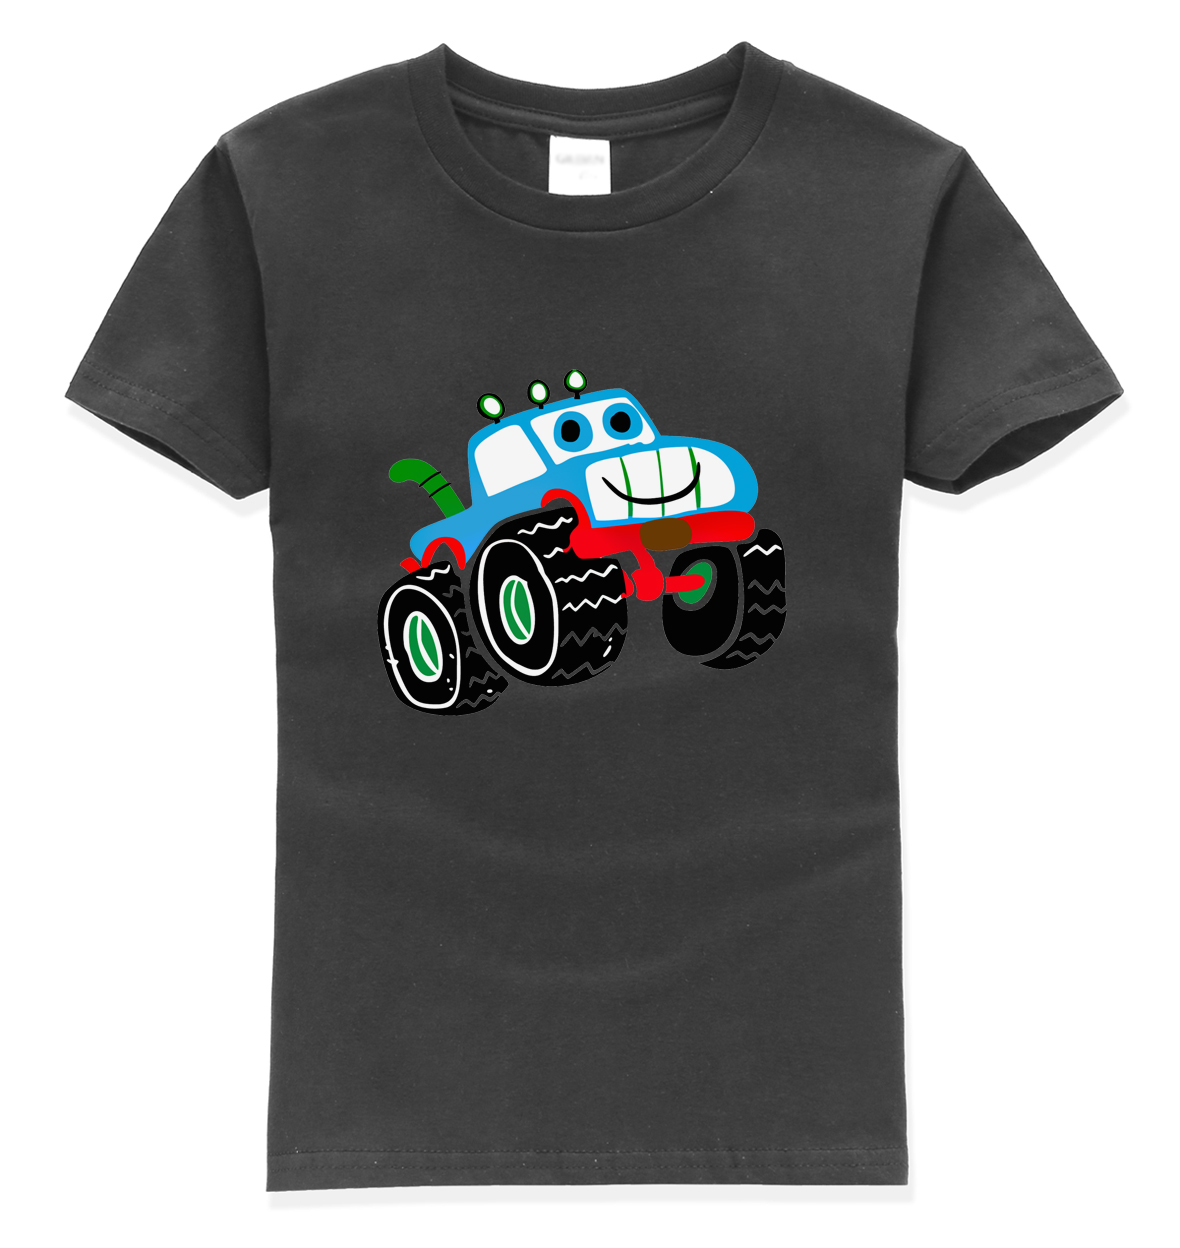 2018 summer new fashion brand hot sale t shirts children funny cartoon car tops tee homme kids t shirt boys clothes short sleeve цена и фото